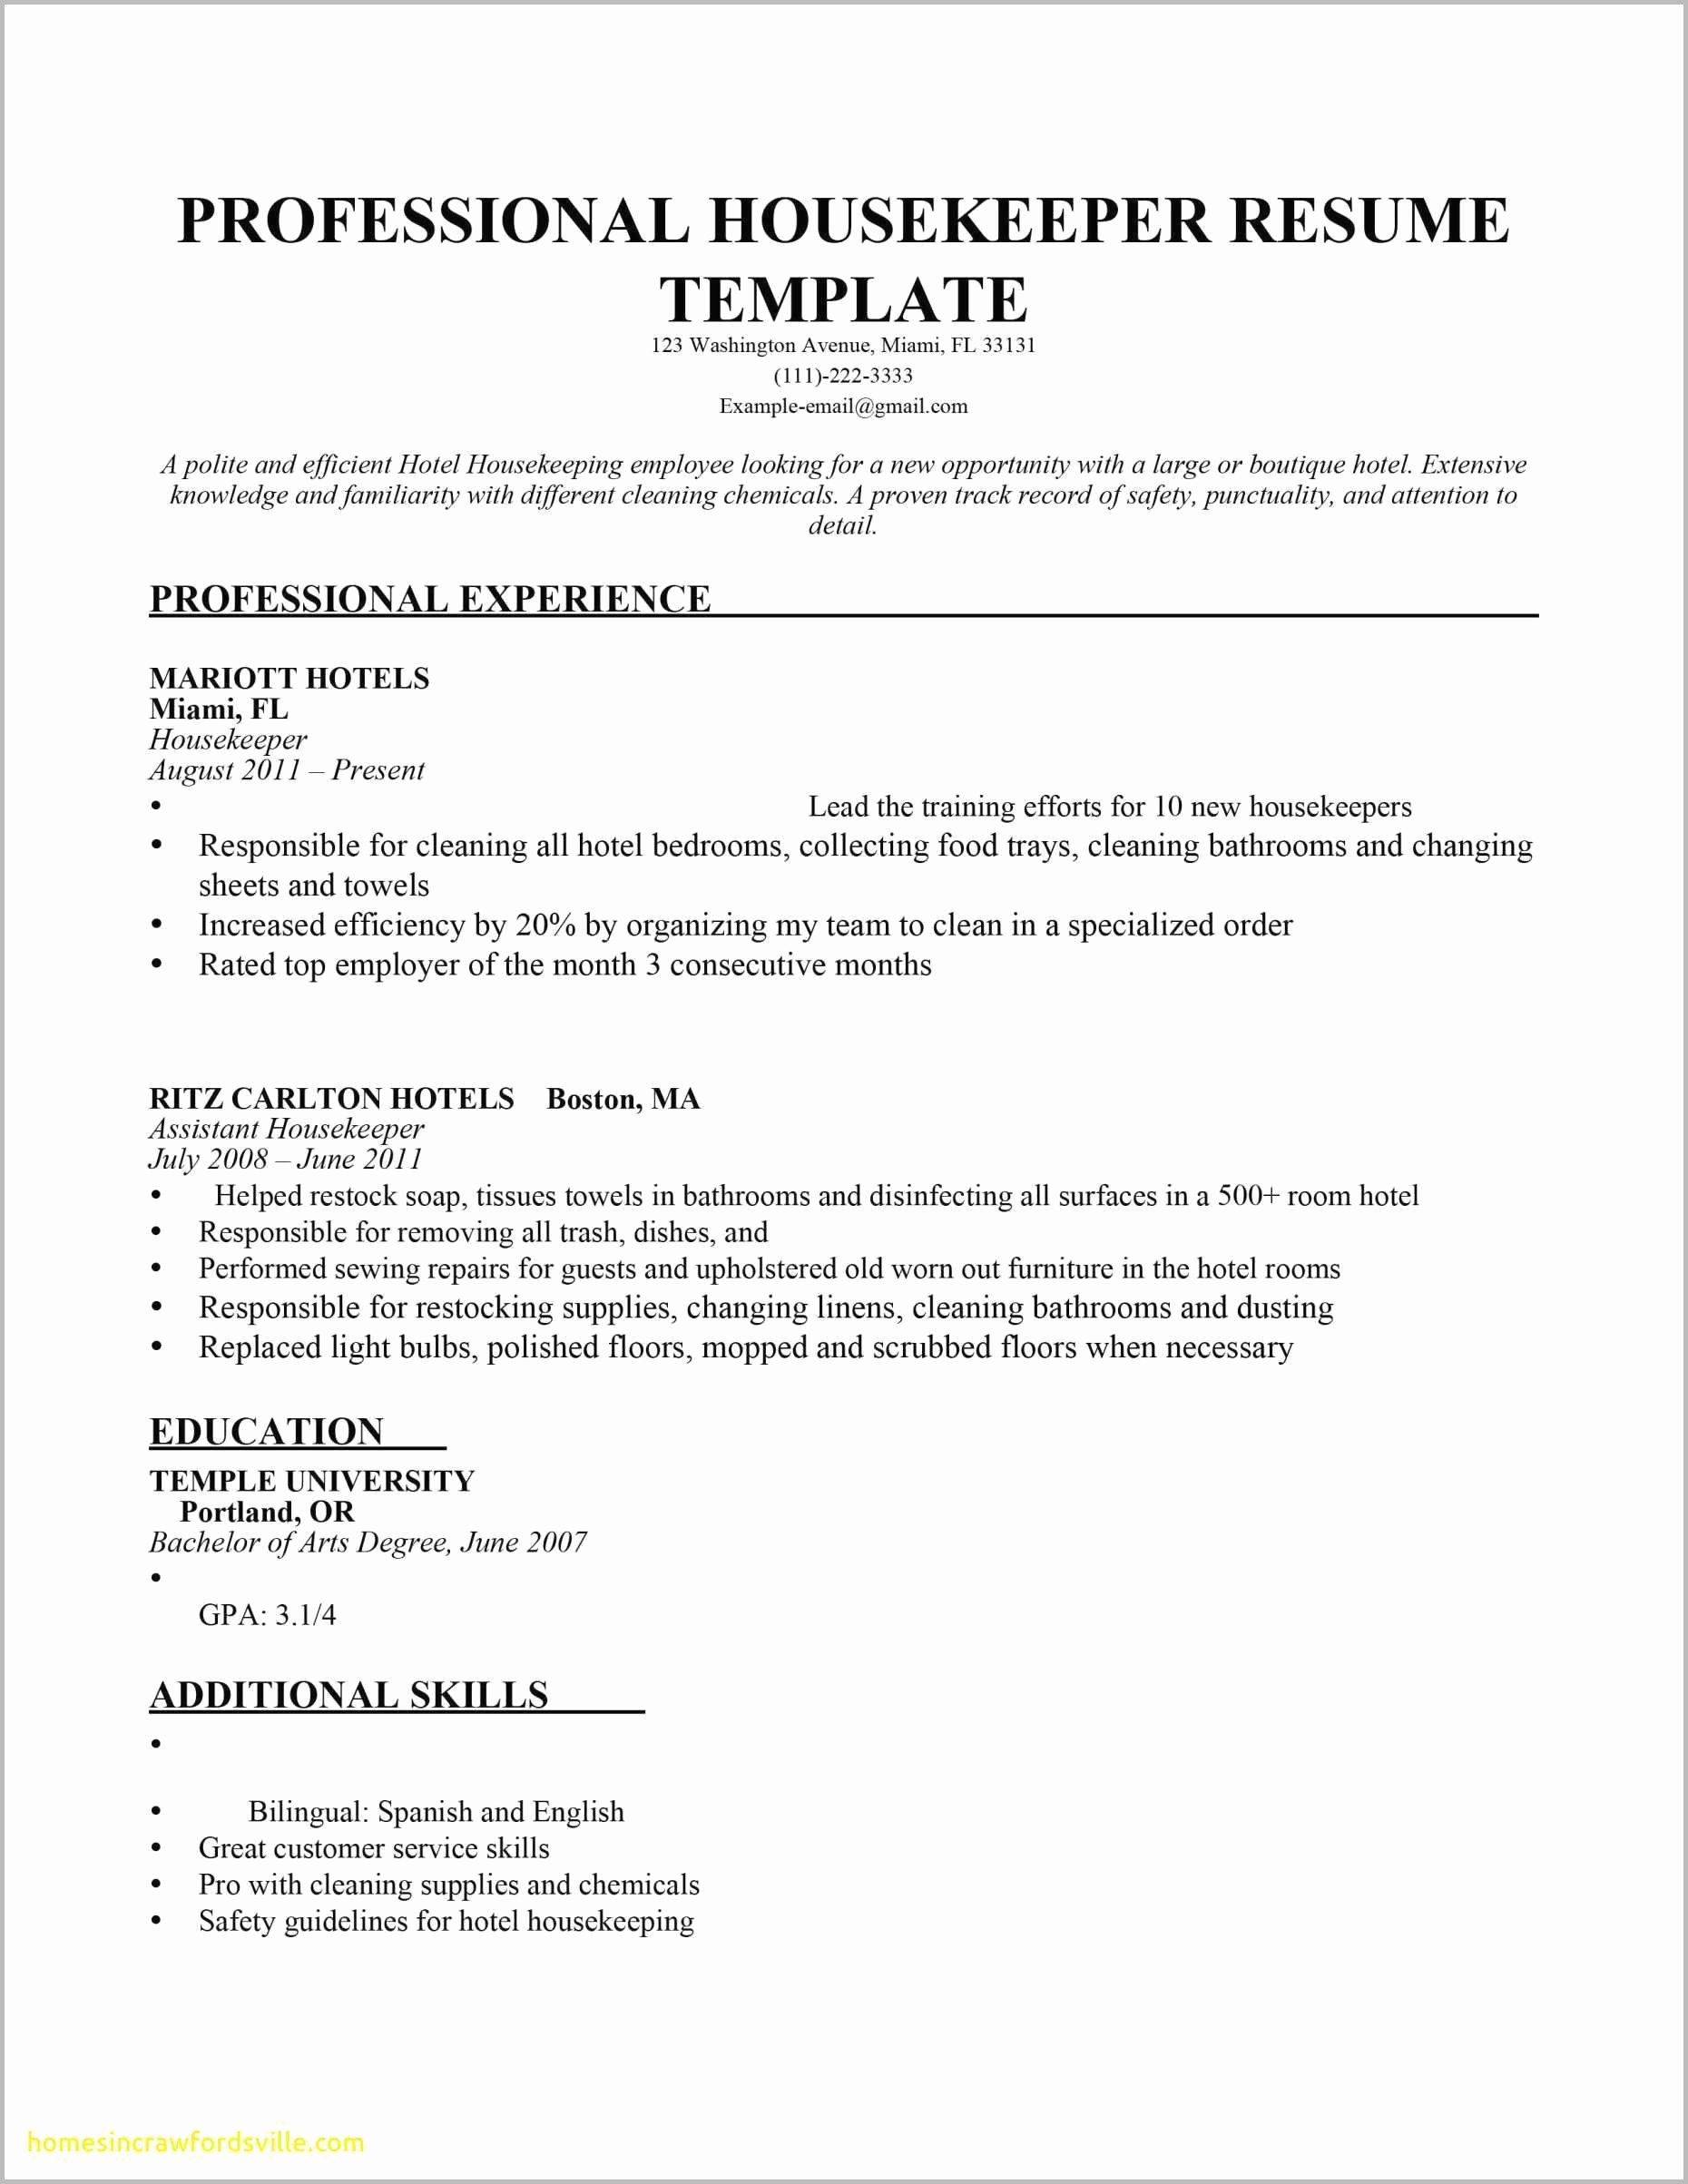 Hotel Housekeeping Resume - Sample Resumes for Housekeepers Hotel Housekeeping Resume Example